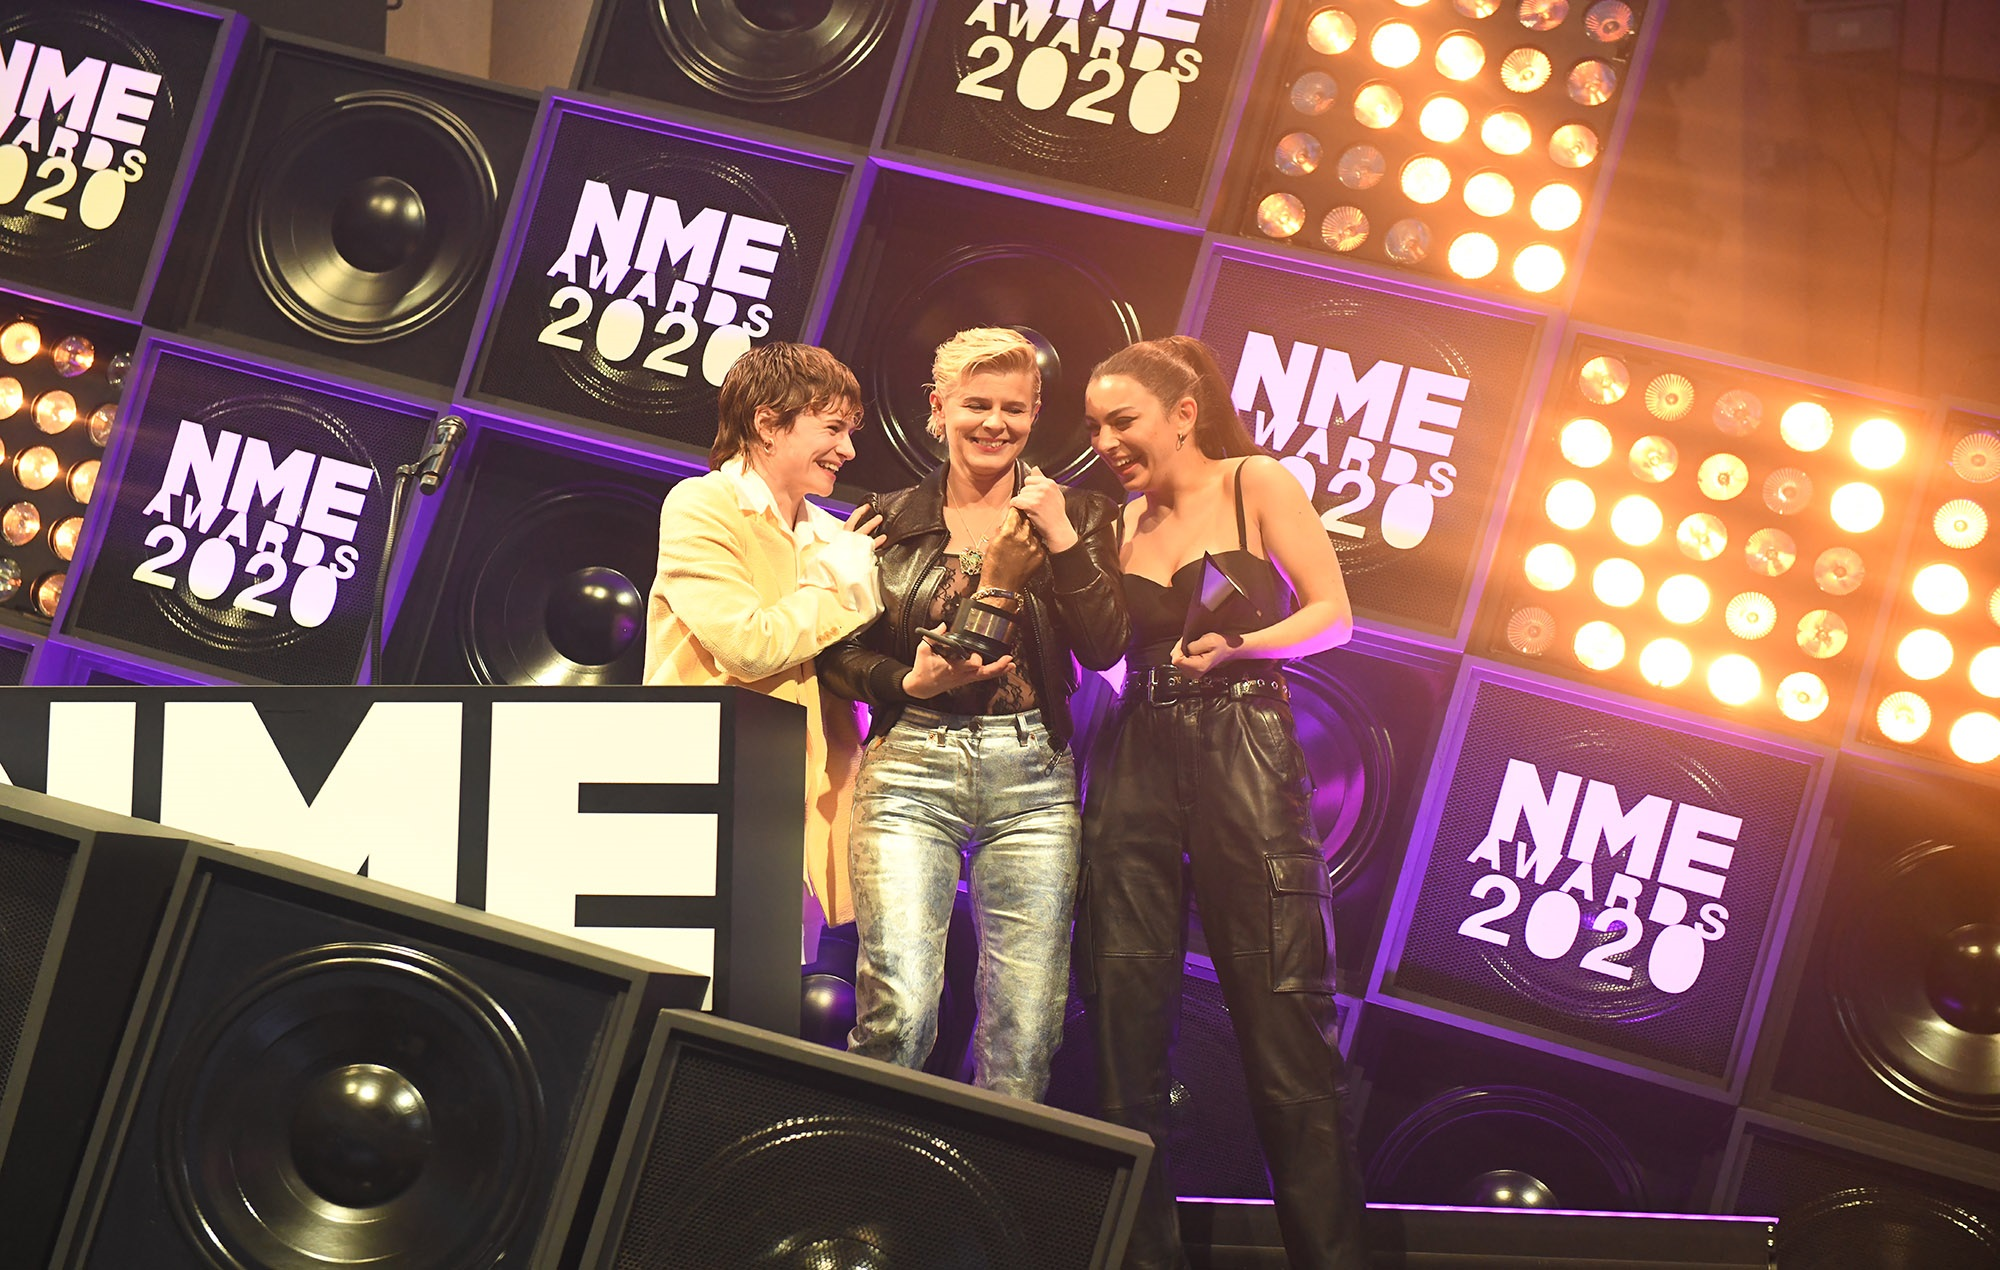 Robyn receives the NME Songwriter Of The Decade gong at the NME Awards 2020